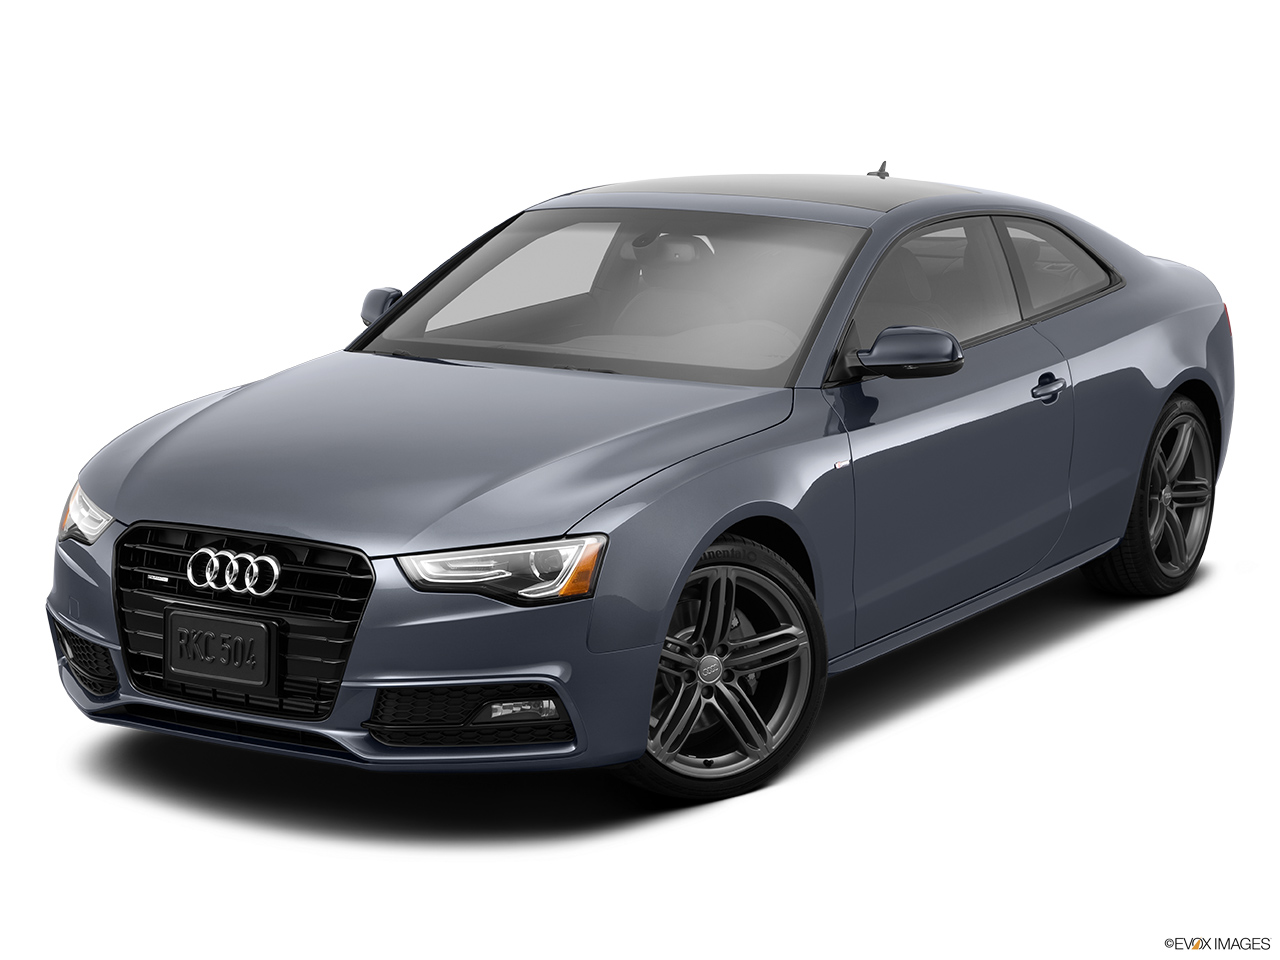 2014 audi a5 coupe automatic quattro 2 0t premium plus. Black Bedroom Furniture Sets. Home Design Ideas